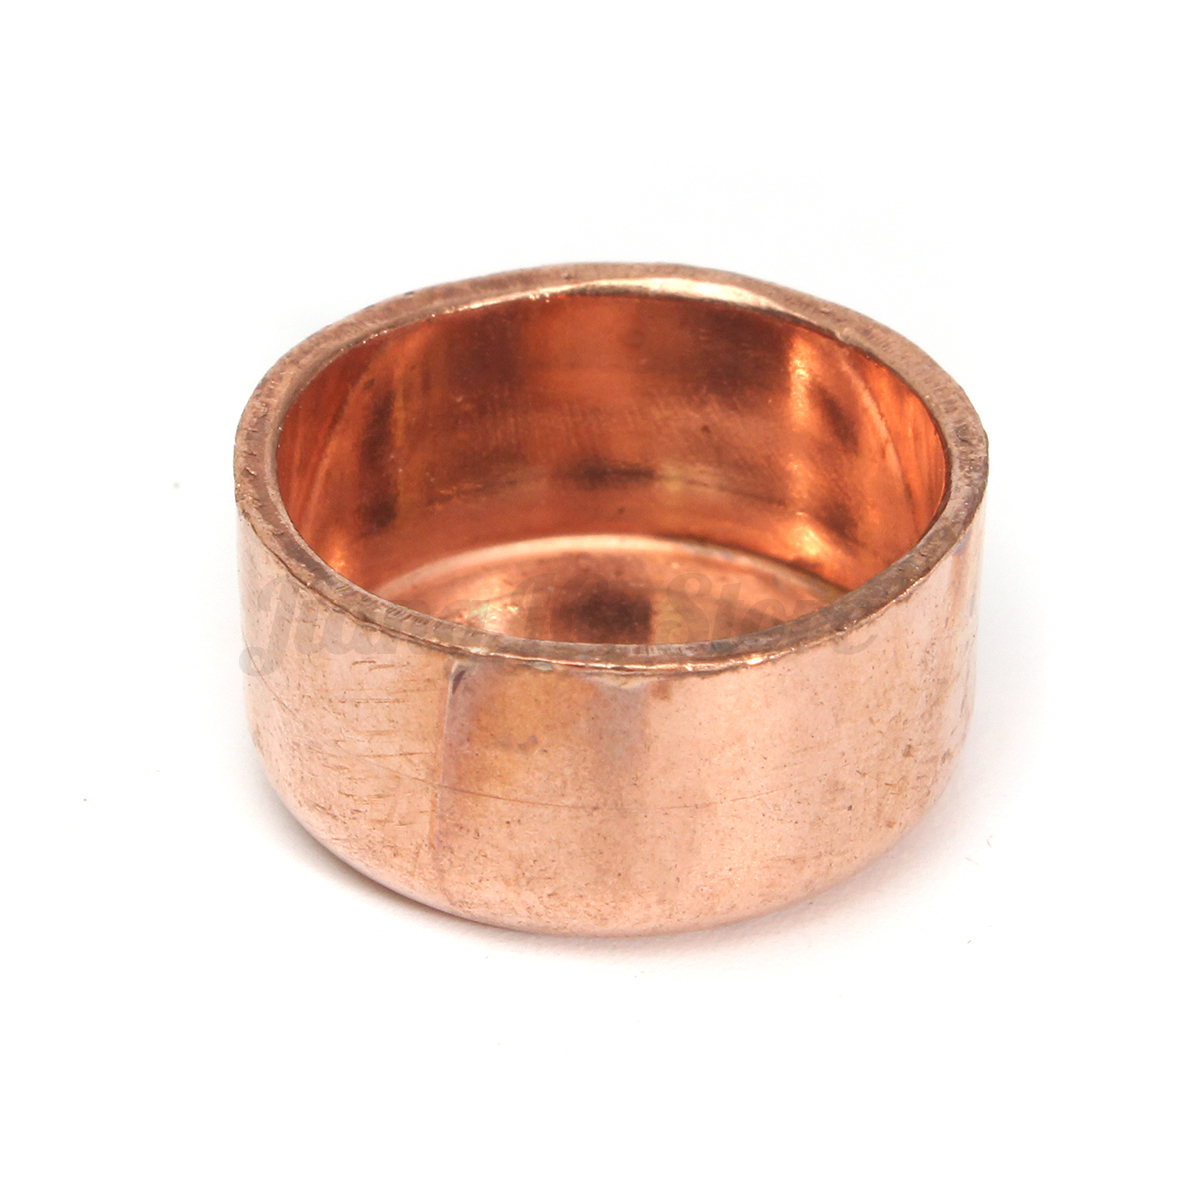 Copper pipe tube stop end feed caps plumbing fittings